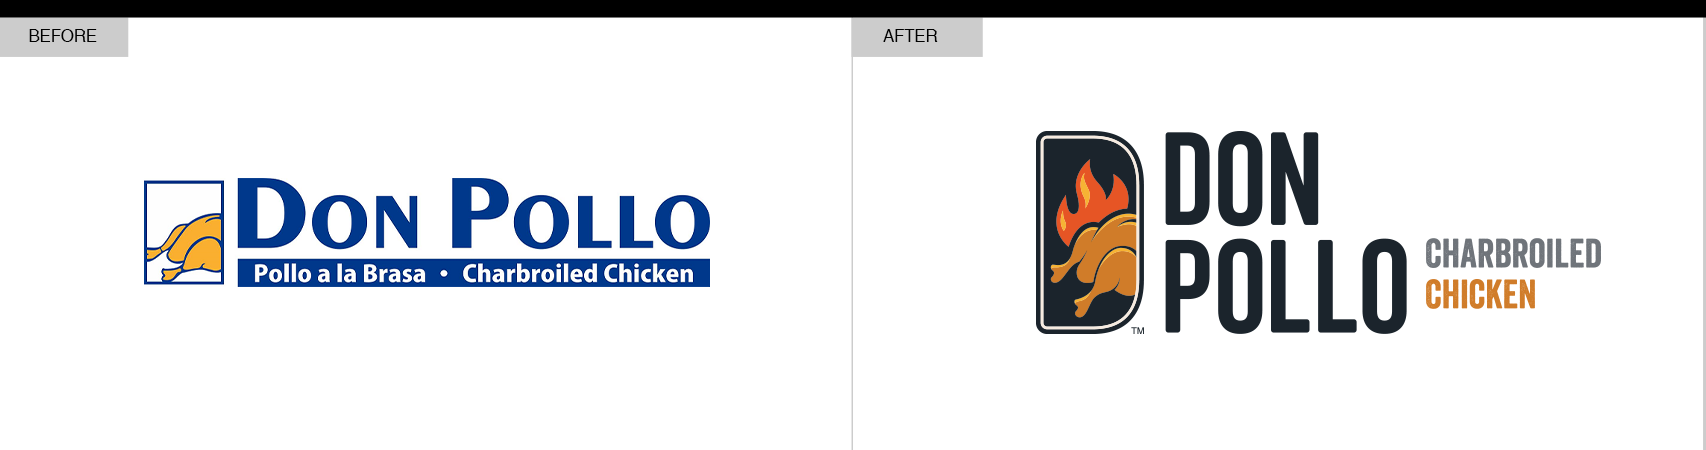 Don Pollo Branding Before and After